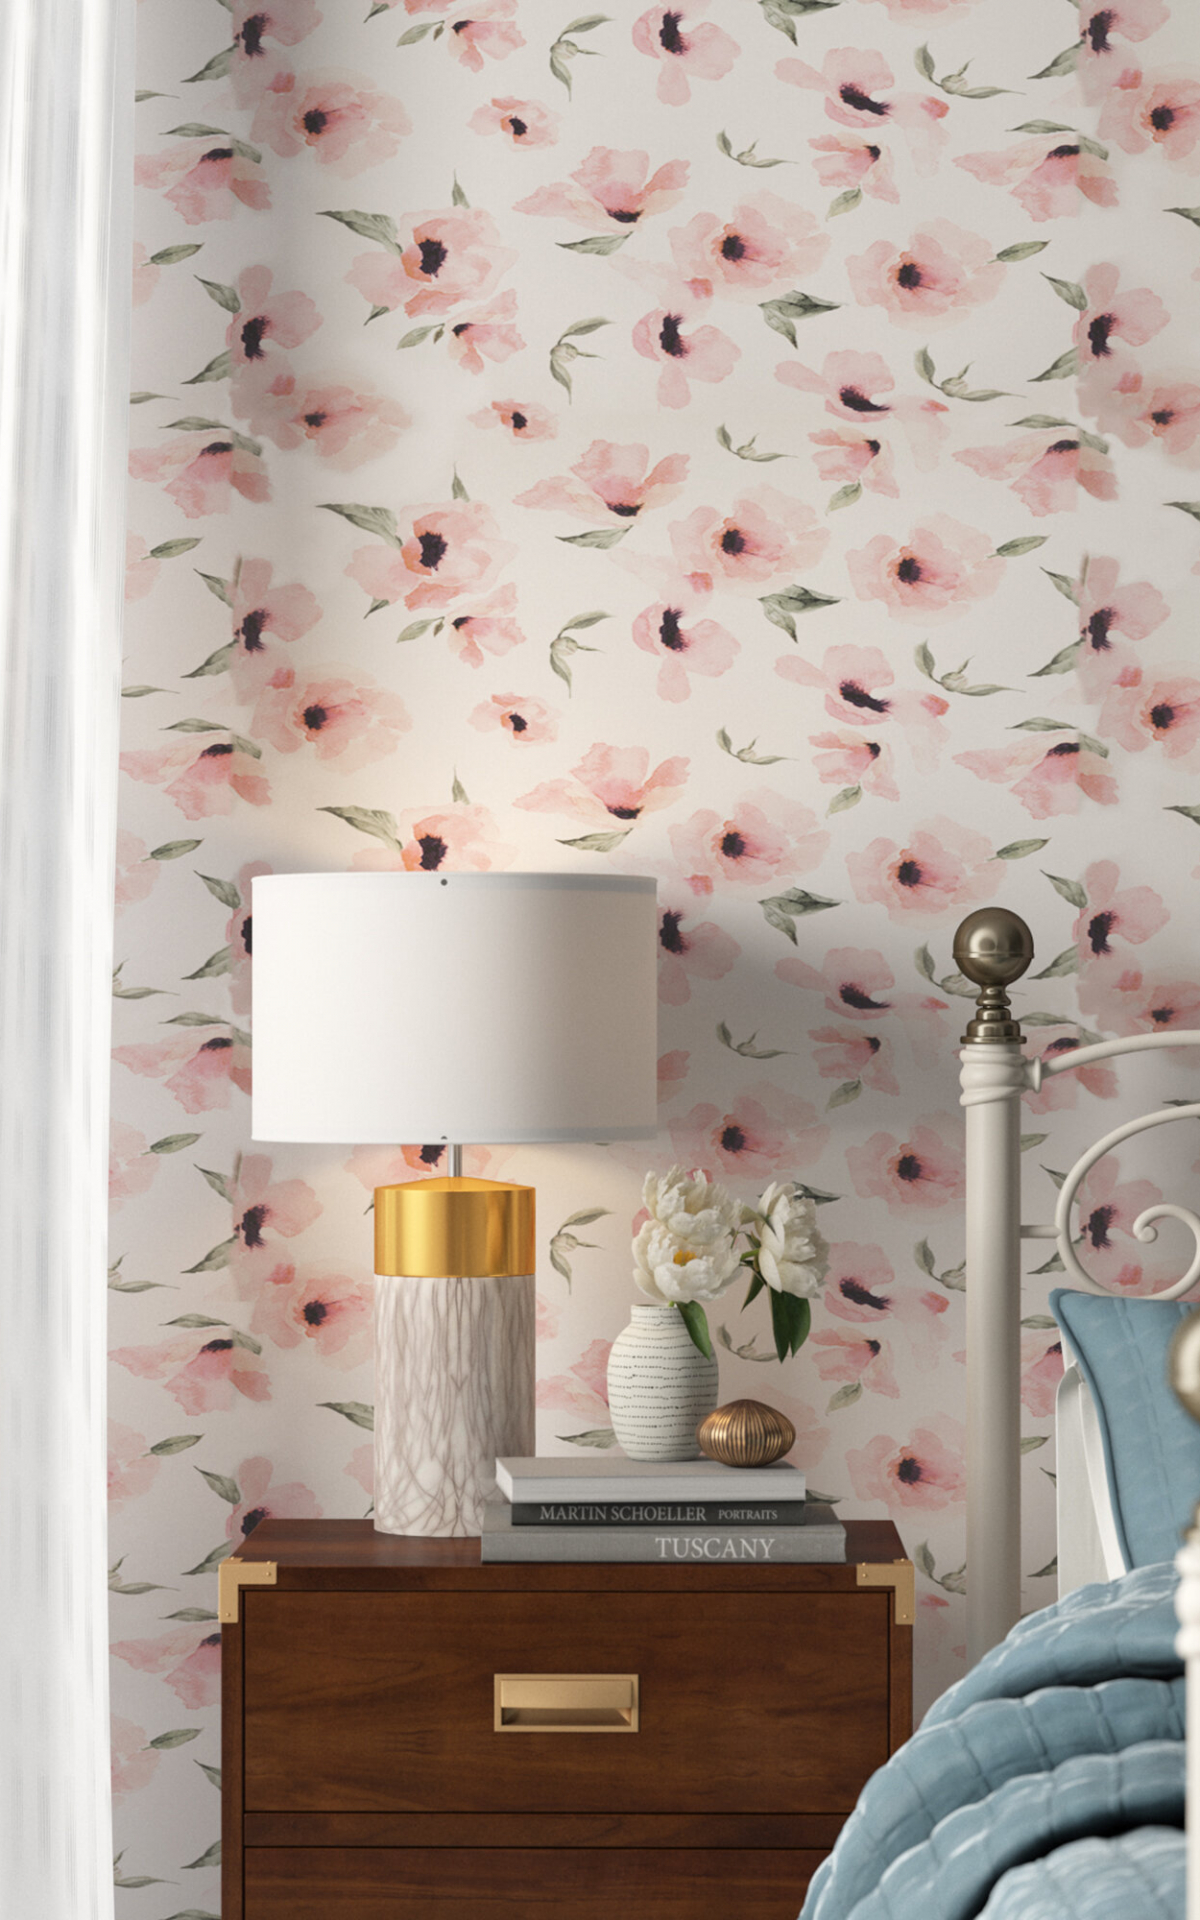 Free Download Fabric Floral Botanical Wallpaper Youll Love In 2019